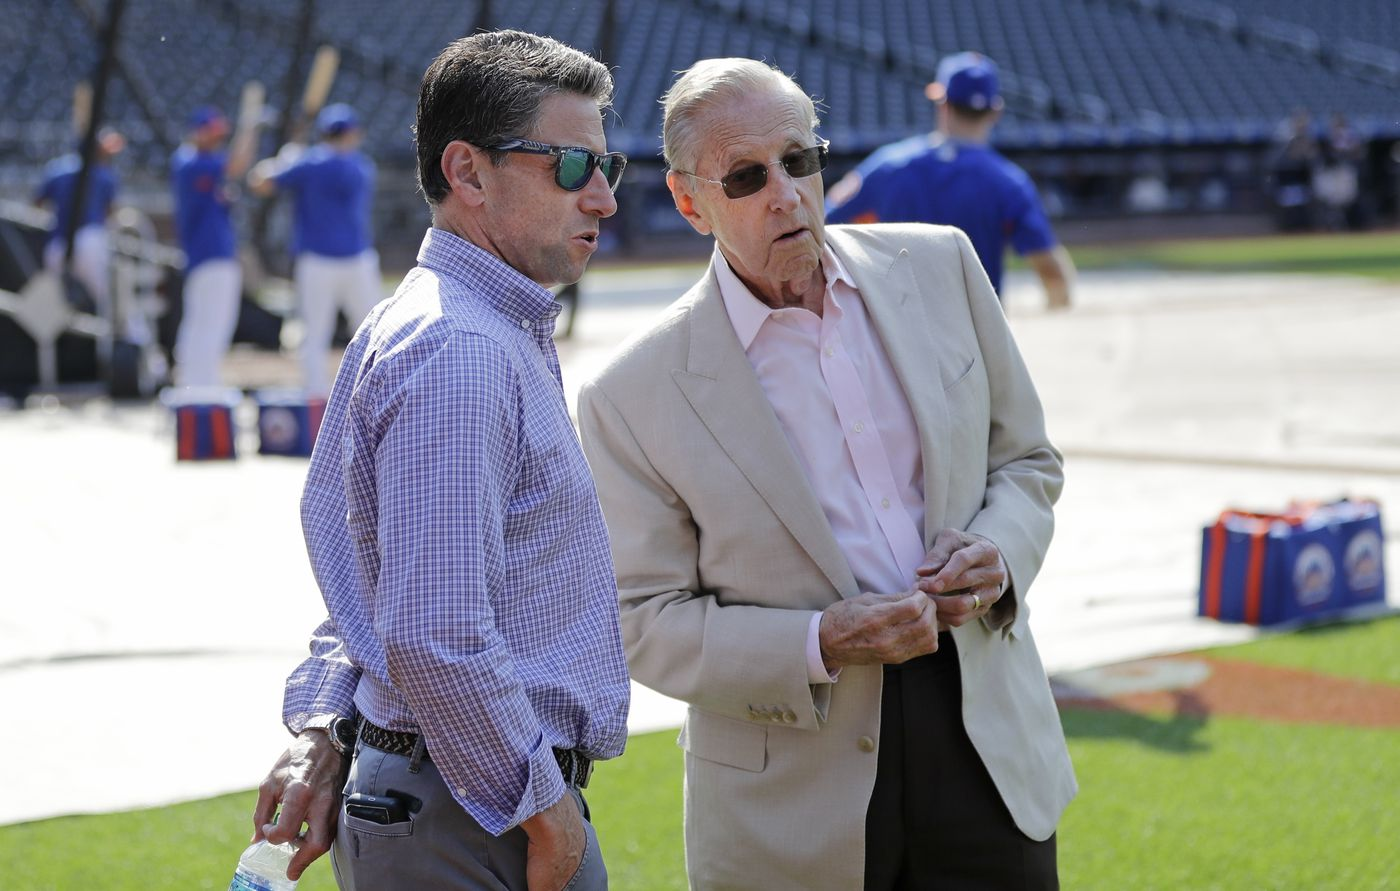 Wilpons still pushing for Mets Sale